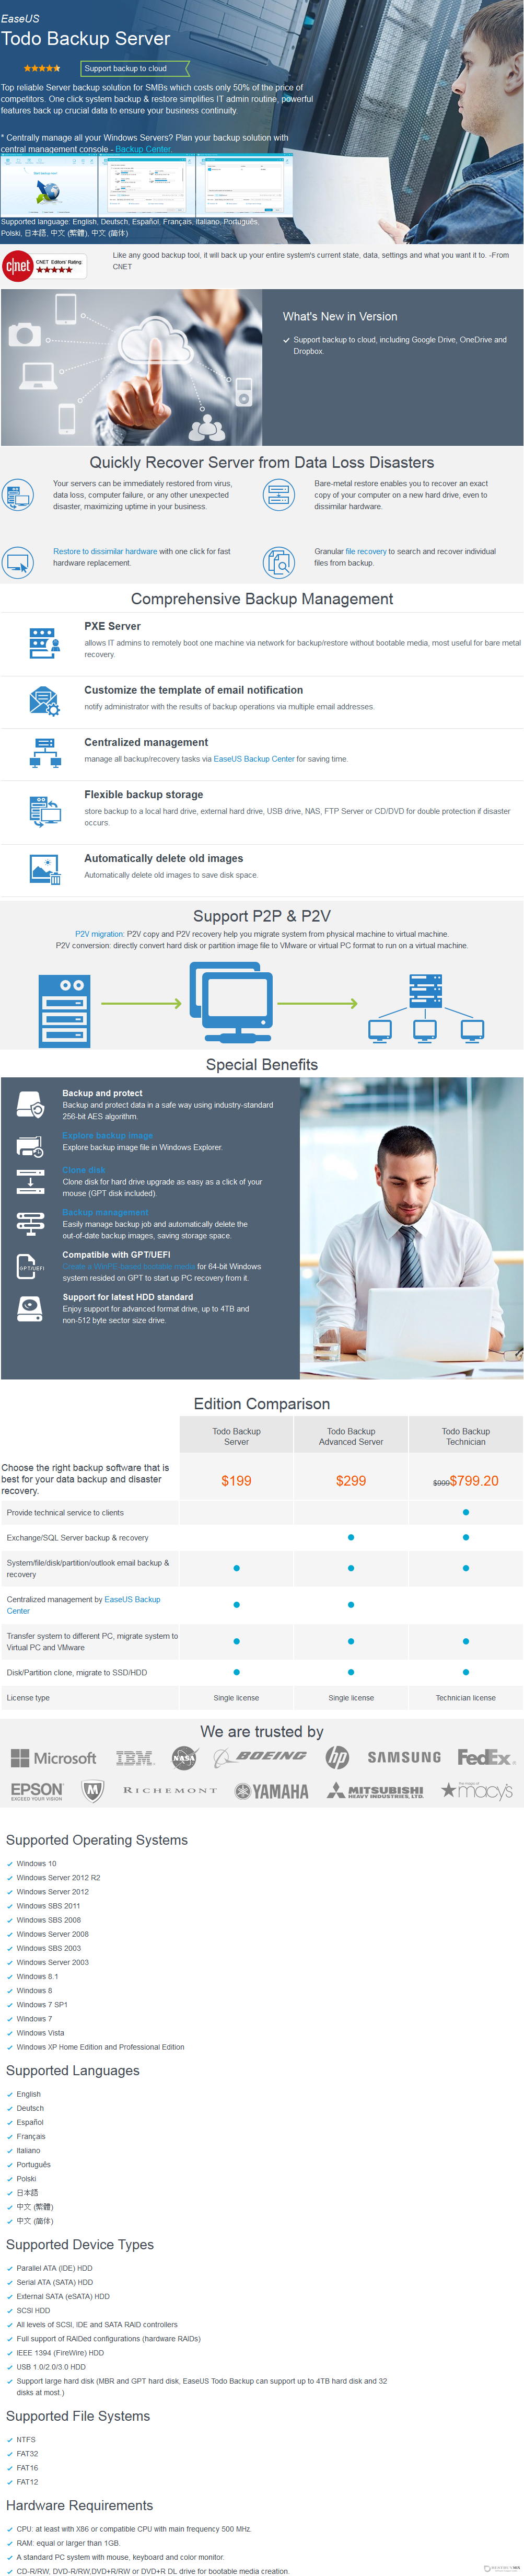 EaseUS Todo Backup Server Discount Coupon Code